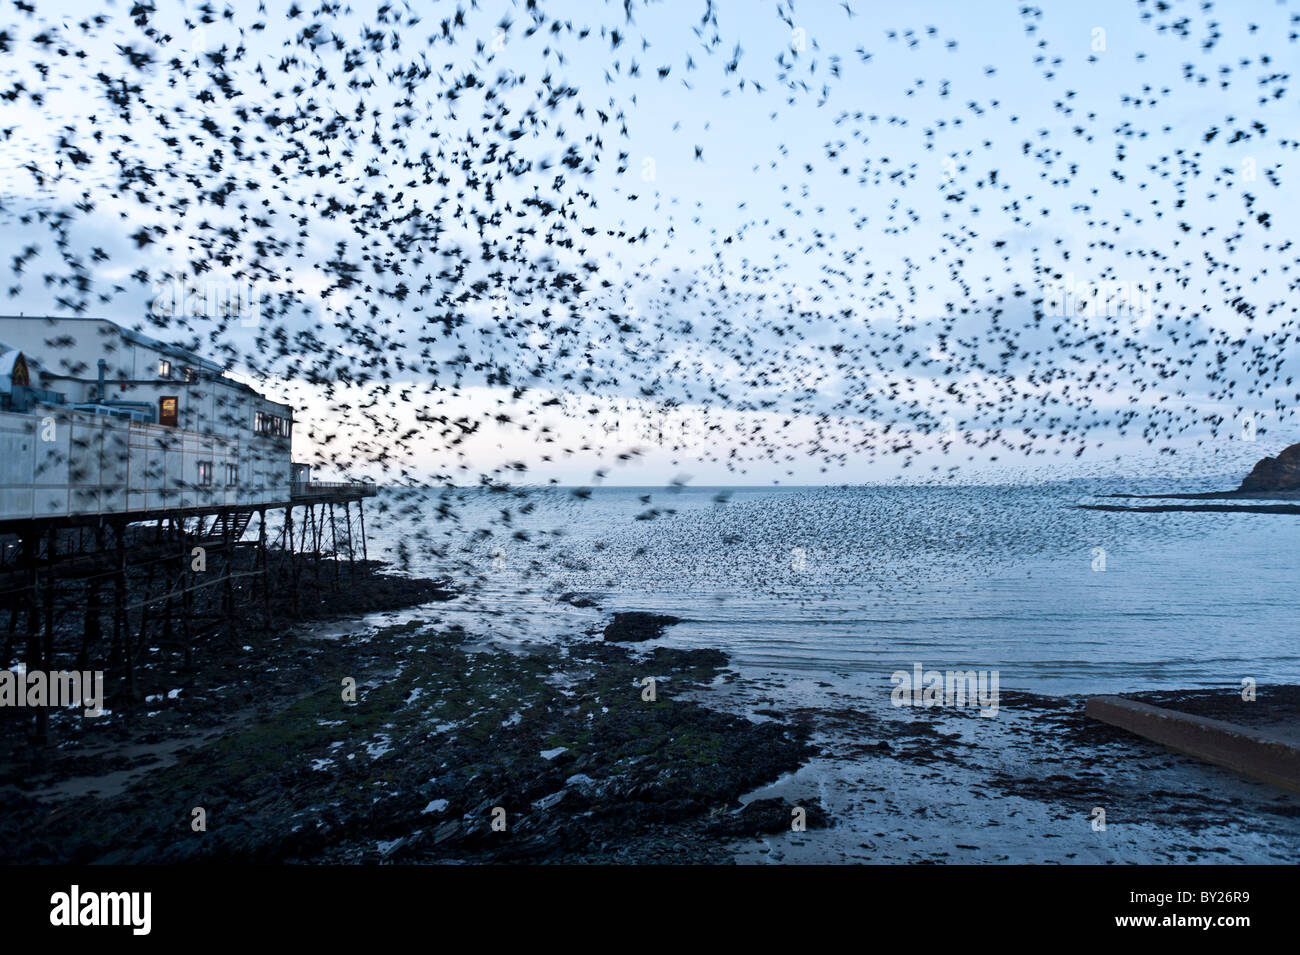 Starlings roosting at Aberystwyth Pier, wales UK Stock Photo